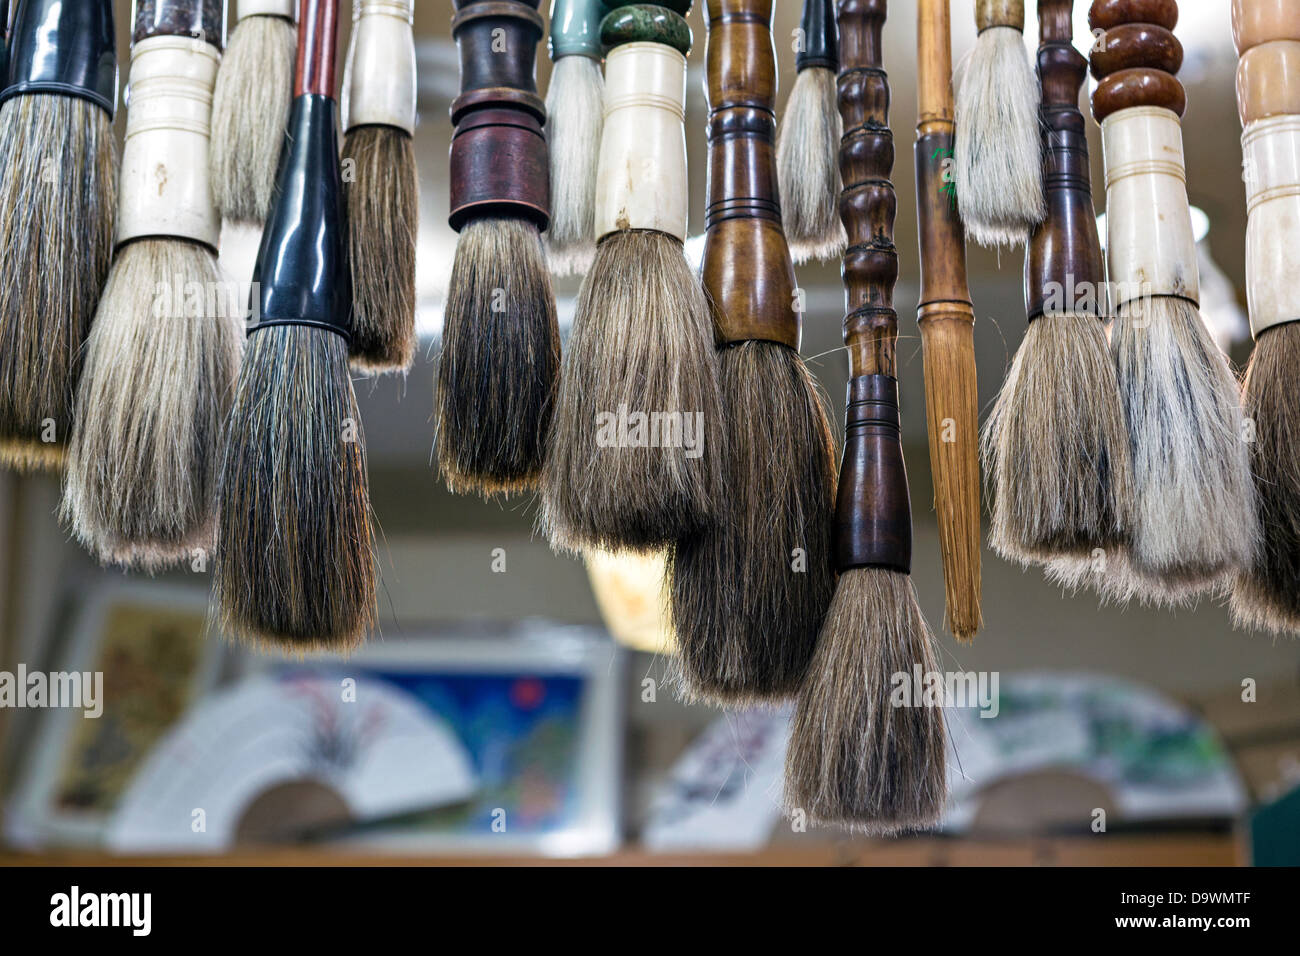 Calligraphy Brushes for sale in Insa-dong, Seoul, South Korea, Asia - Stock Image